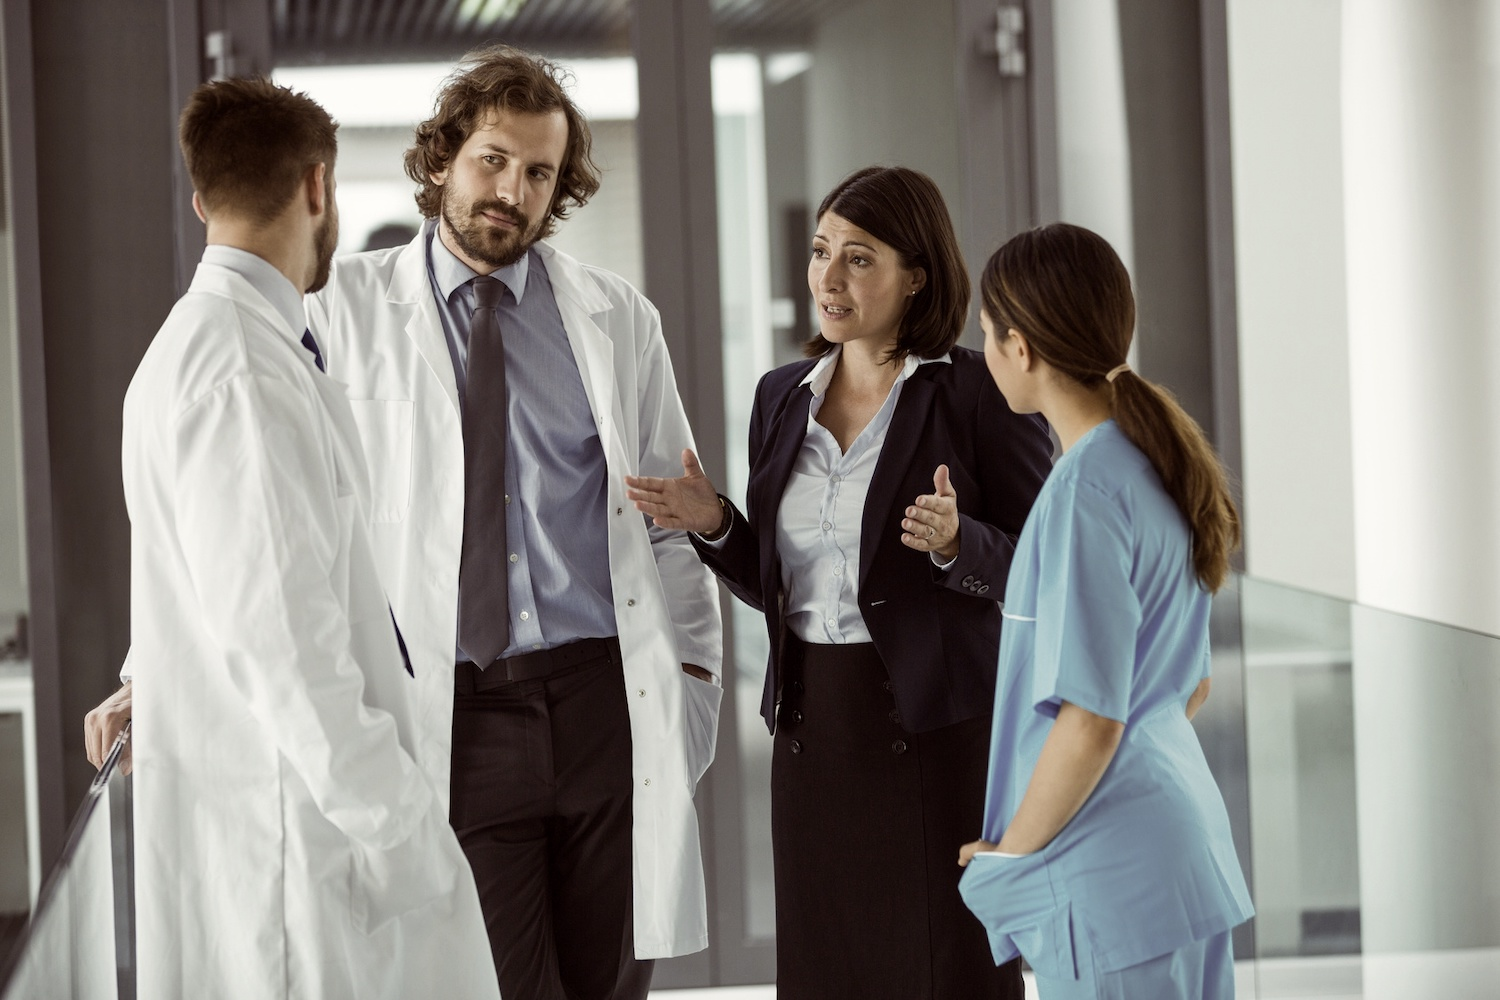 Physician Partners Meeting to Hire Medical Marketers | Vanguard Communications | Denver, CO | San Jose, CA